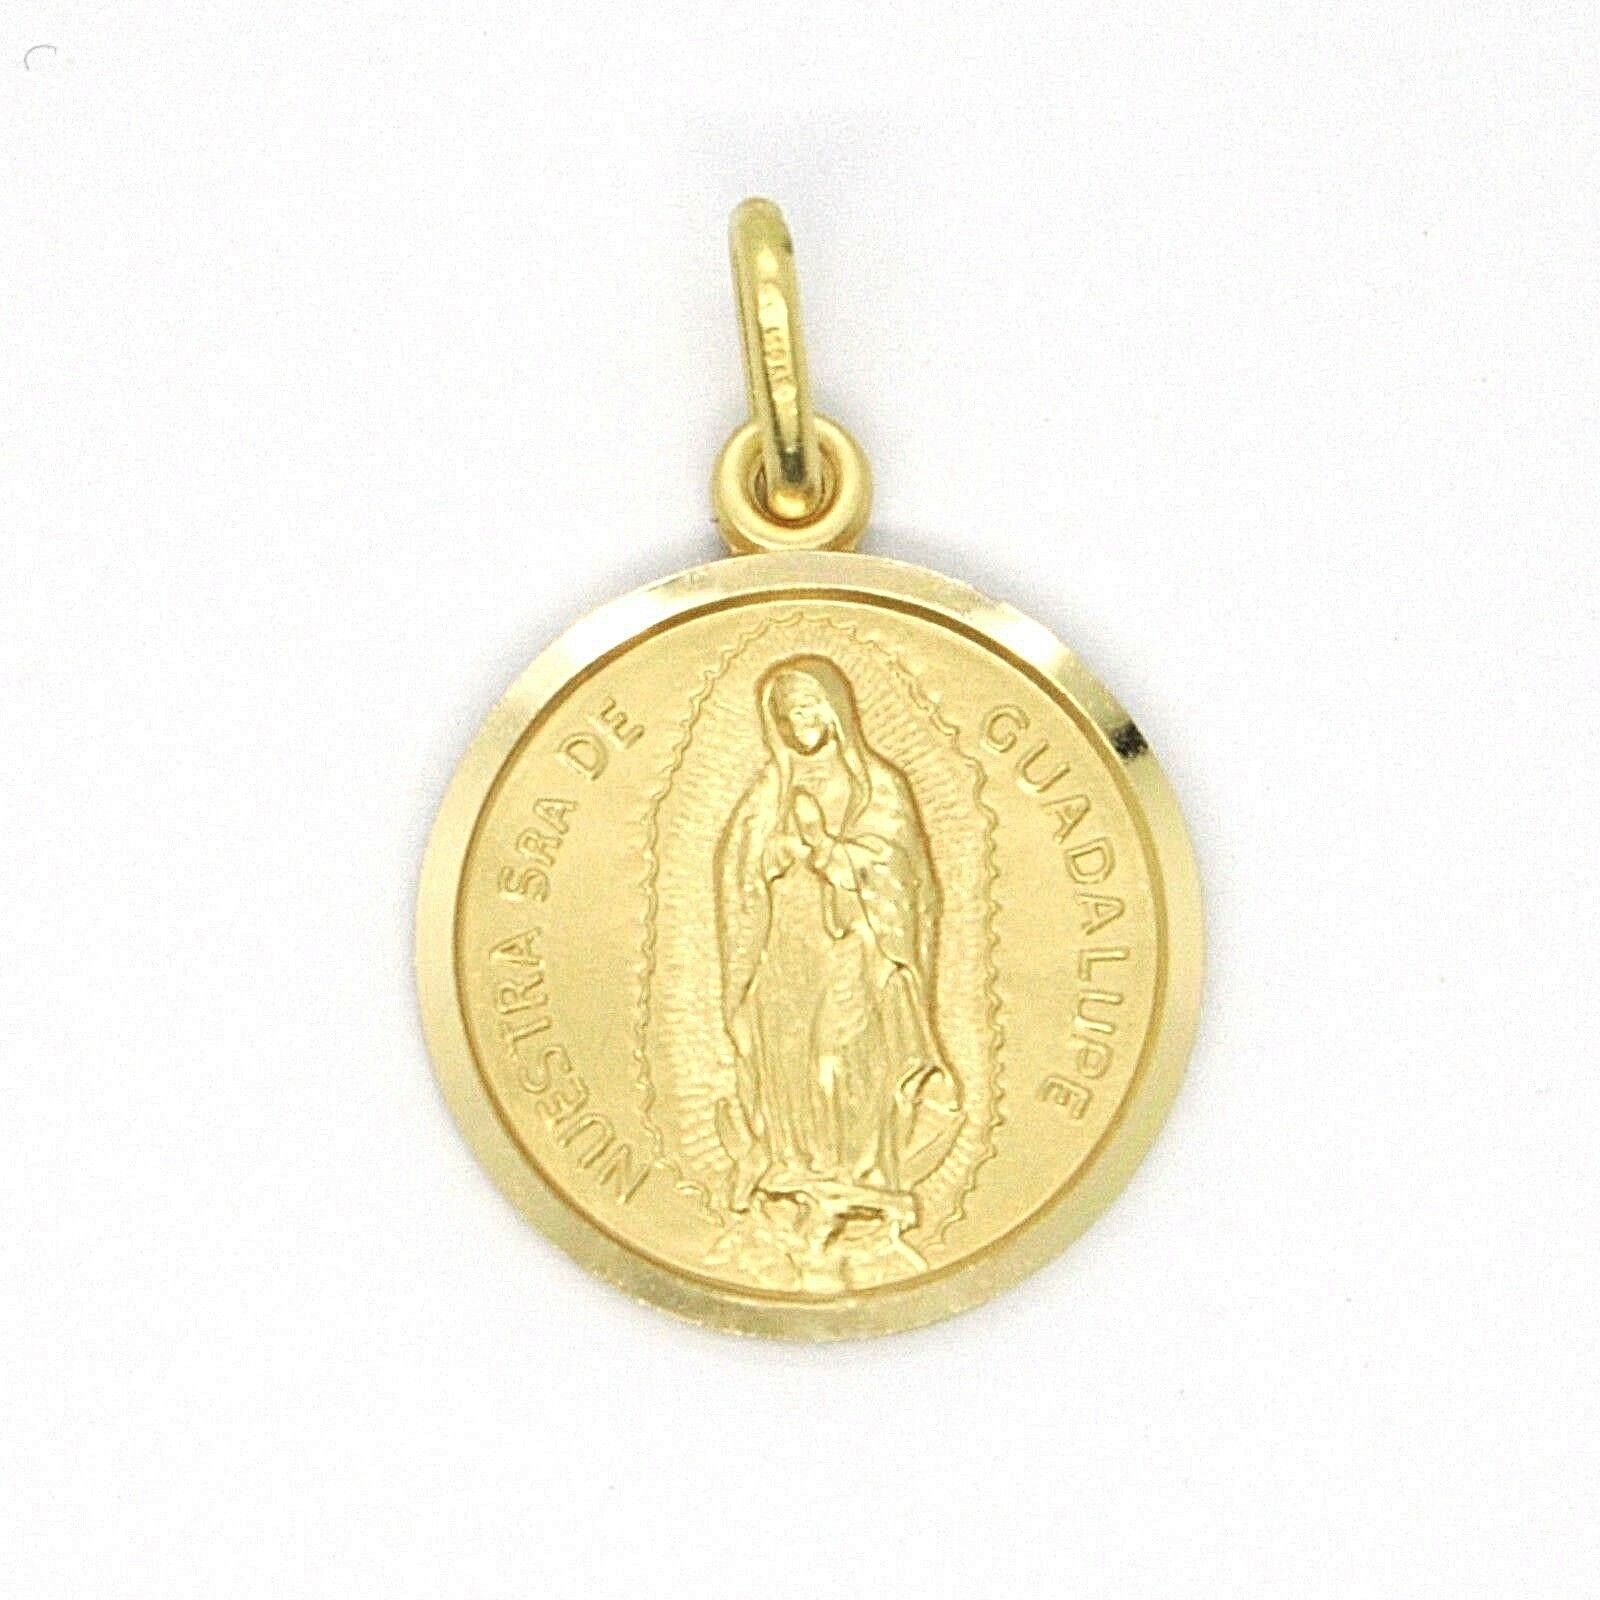 SOLID 18K YELLOW GOLD LADY OF GUADALUPE, 13 MM, ROUND MEDAL MADE IN ITALY SENORA